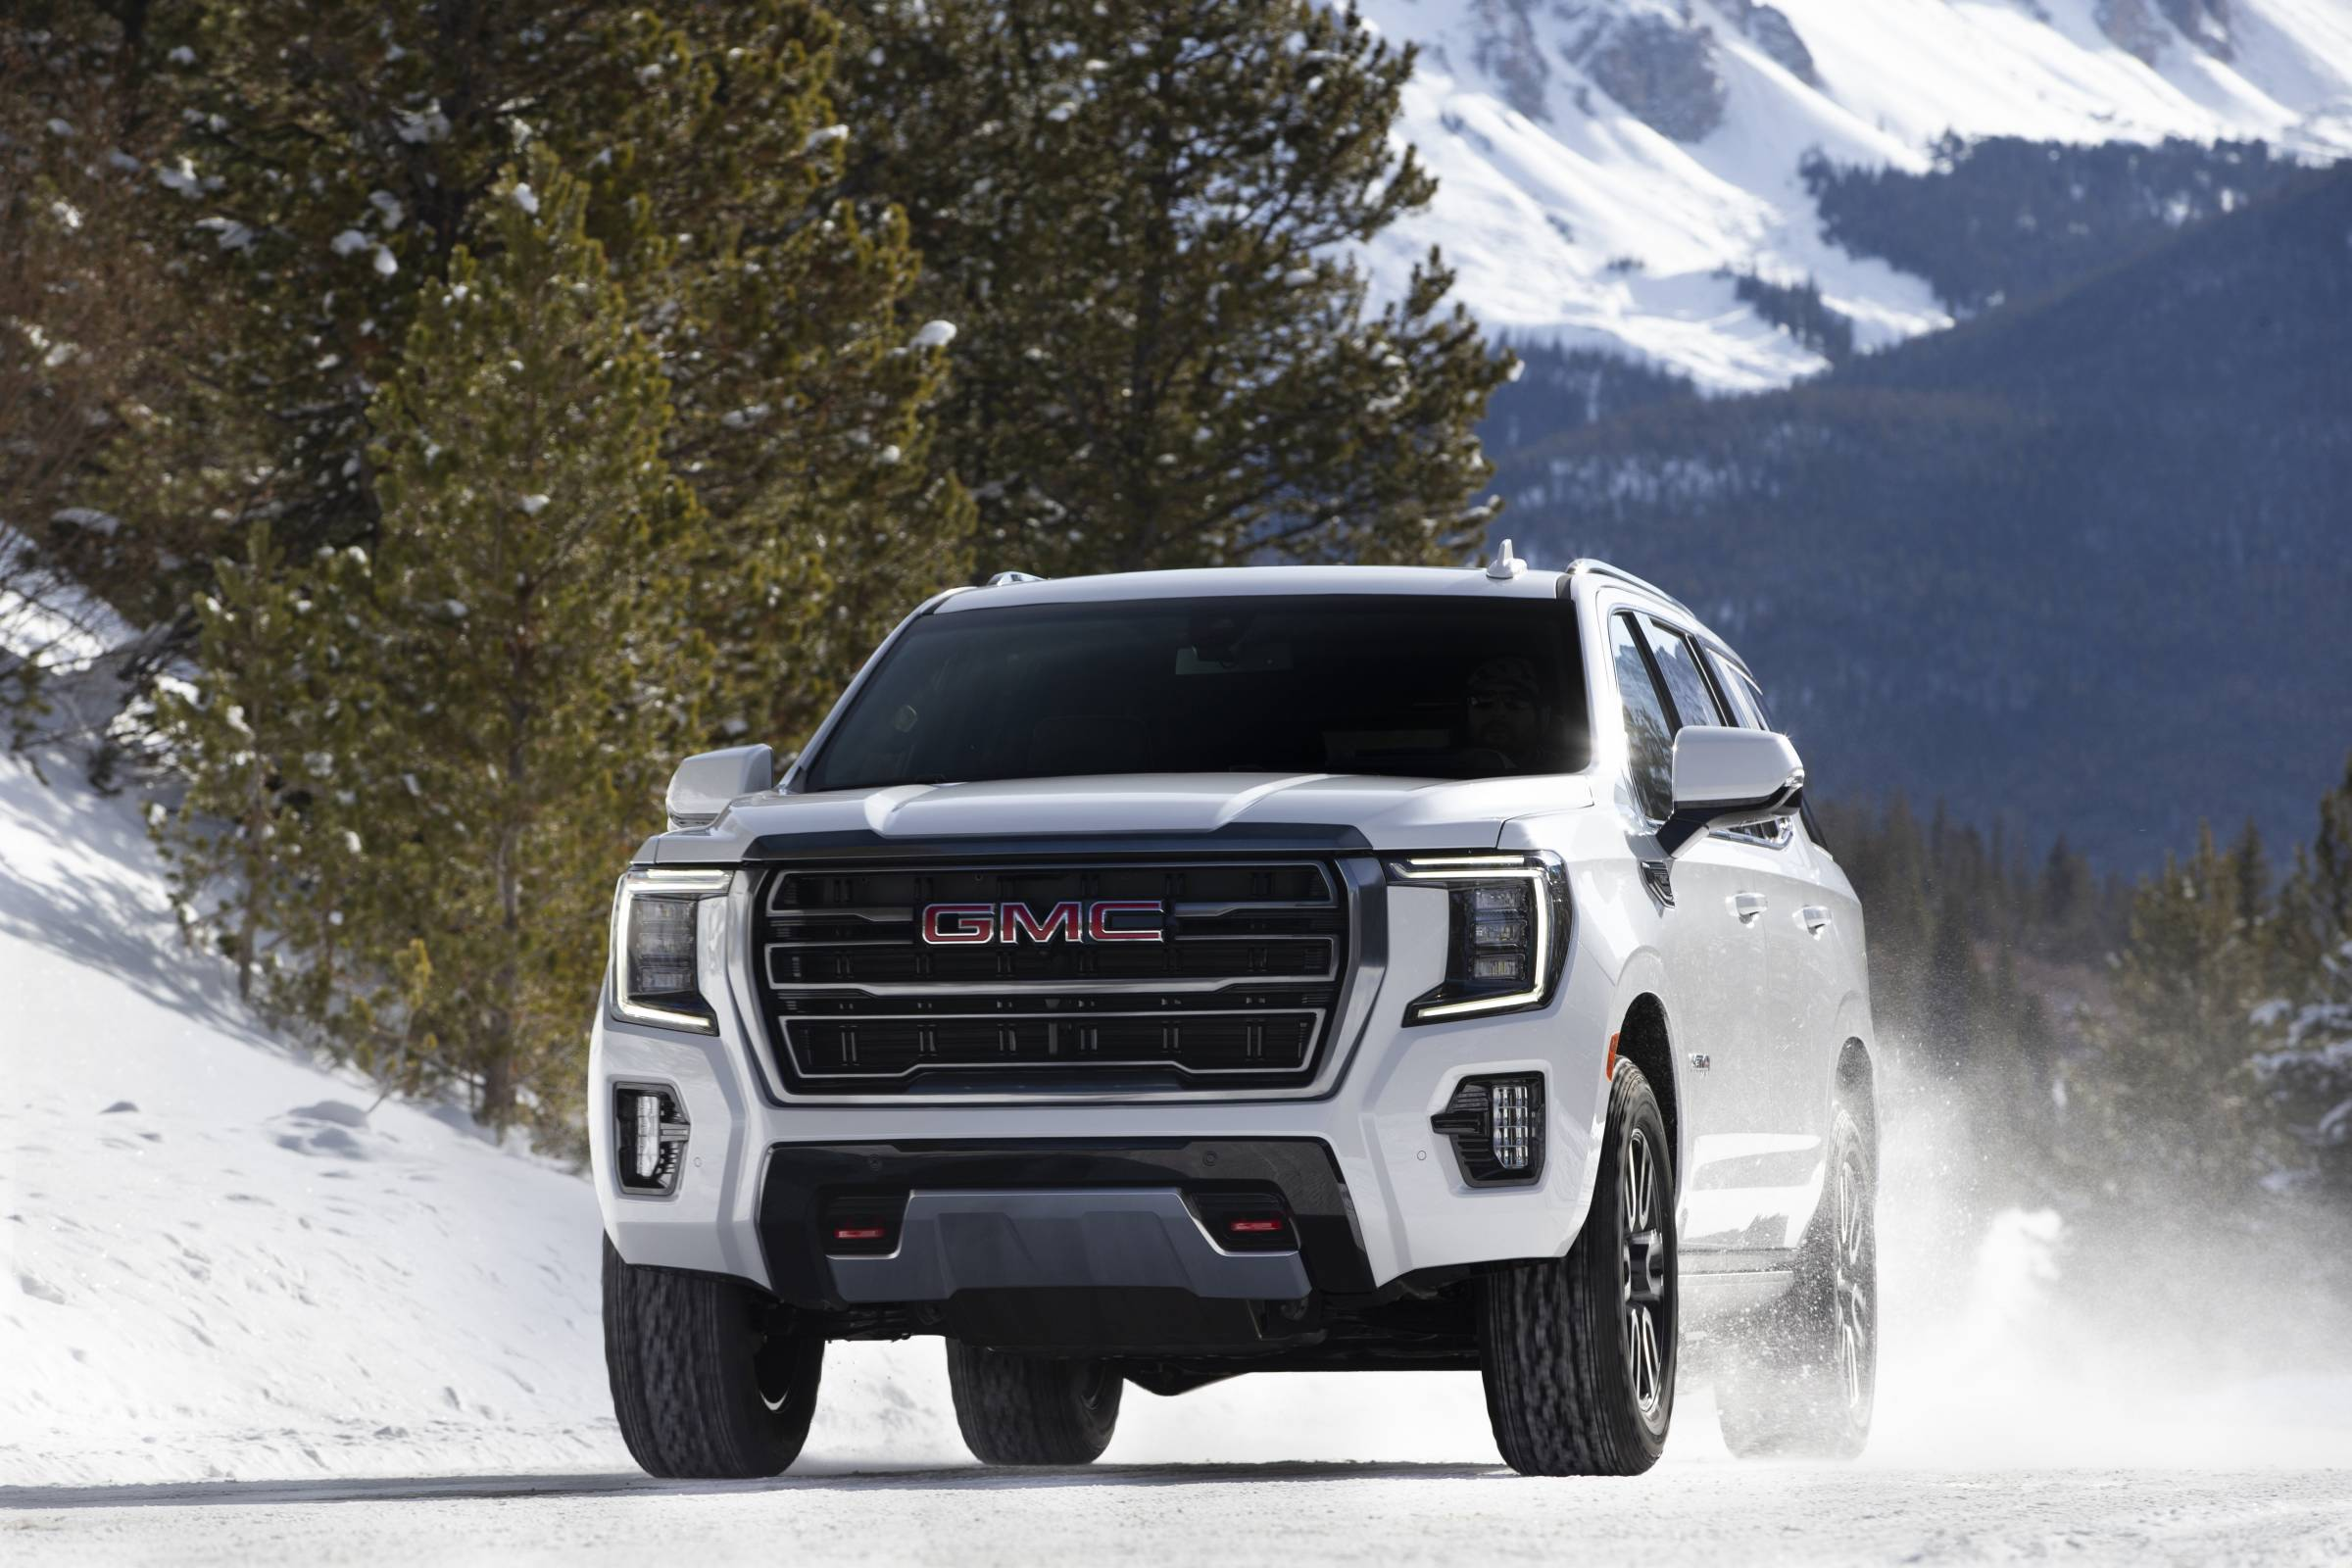 2021 Gmc Yukon First Look At An Off Road Capable Luxury Suv Gearjunkie